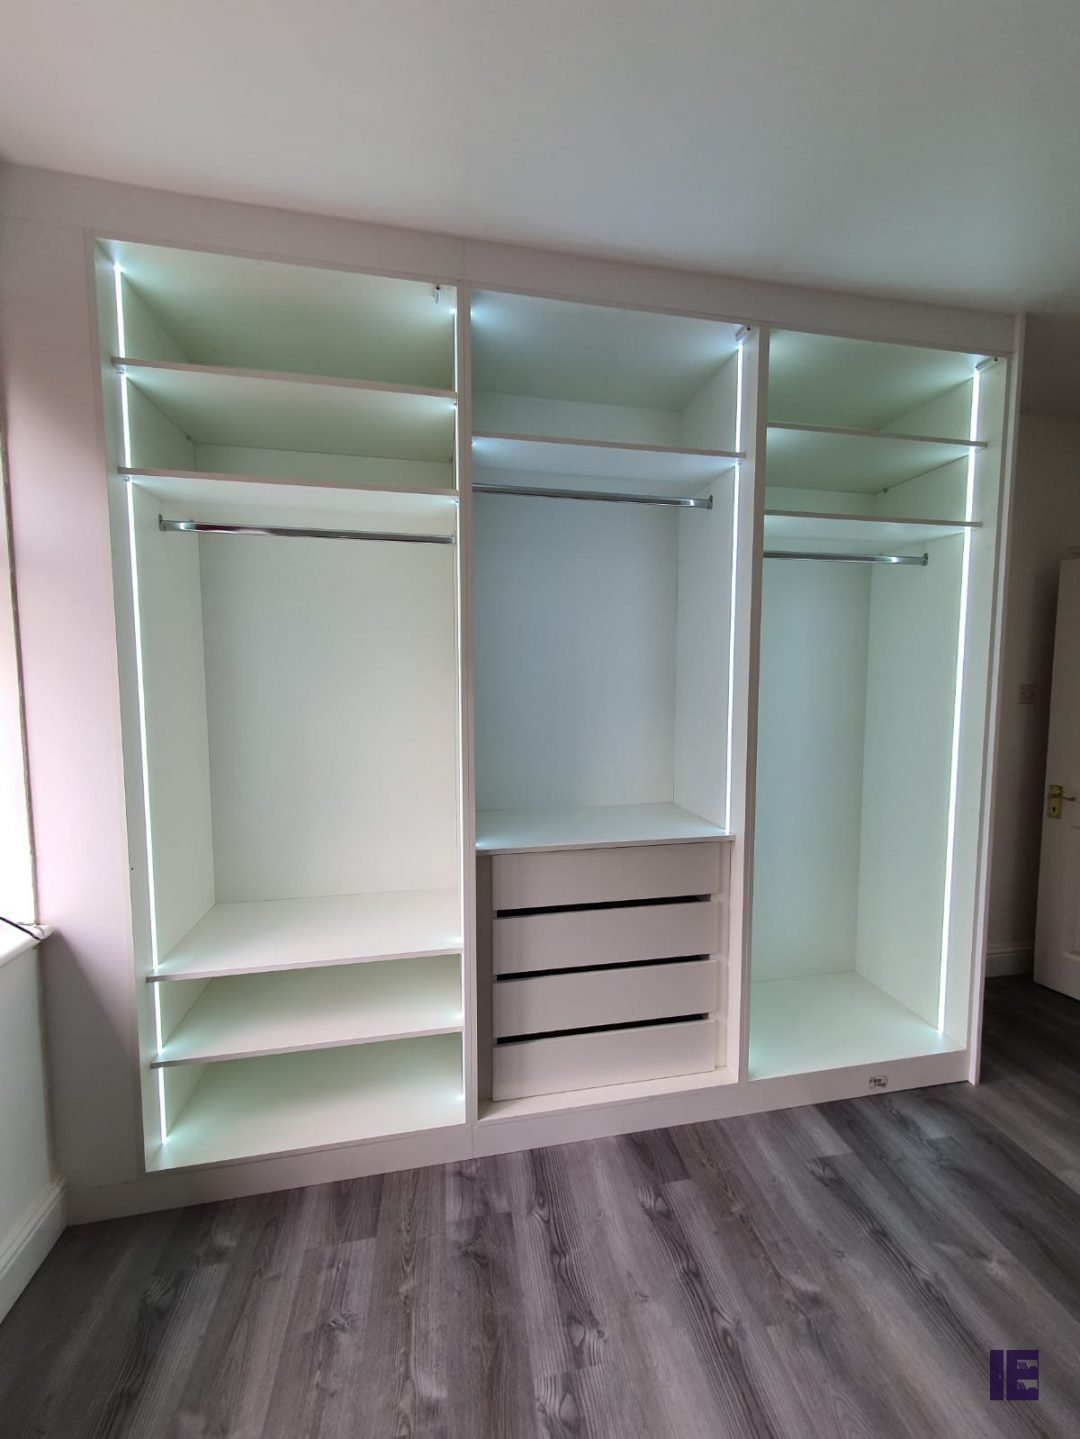 bespoke fitted HInged wardrobes in matt white finish with LED